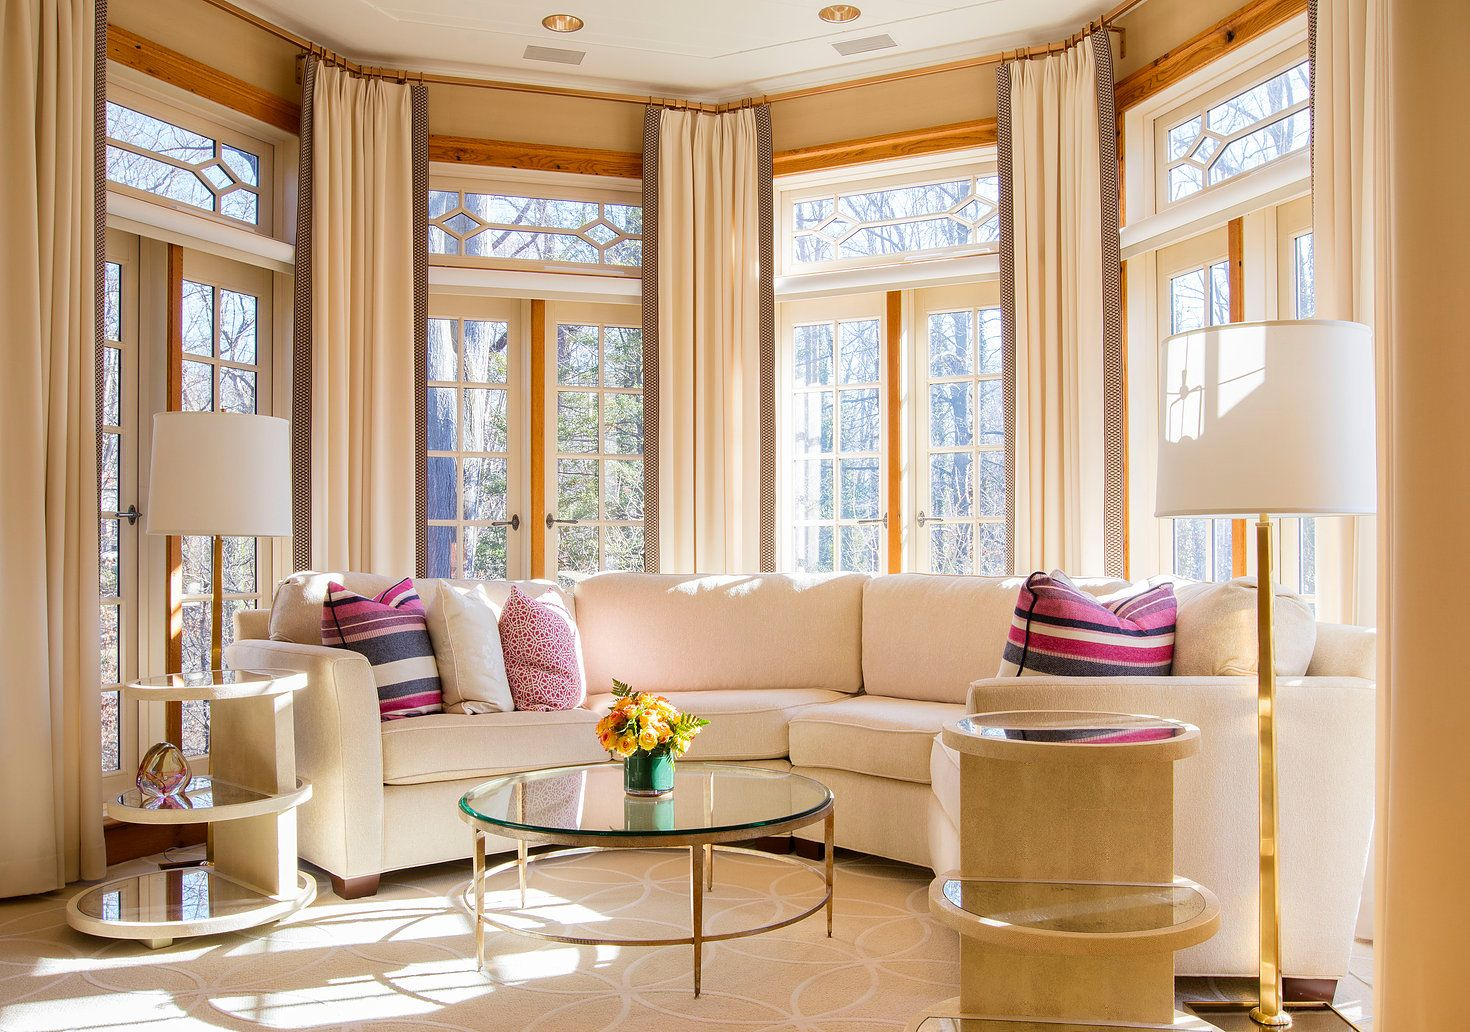 Residential Interior design firm in Washington, DC. Over ...